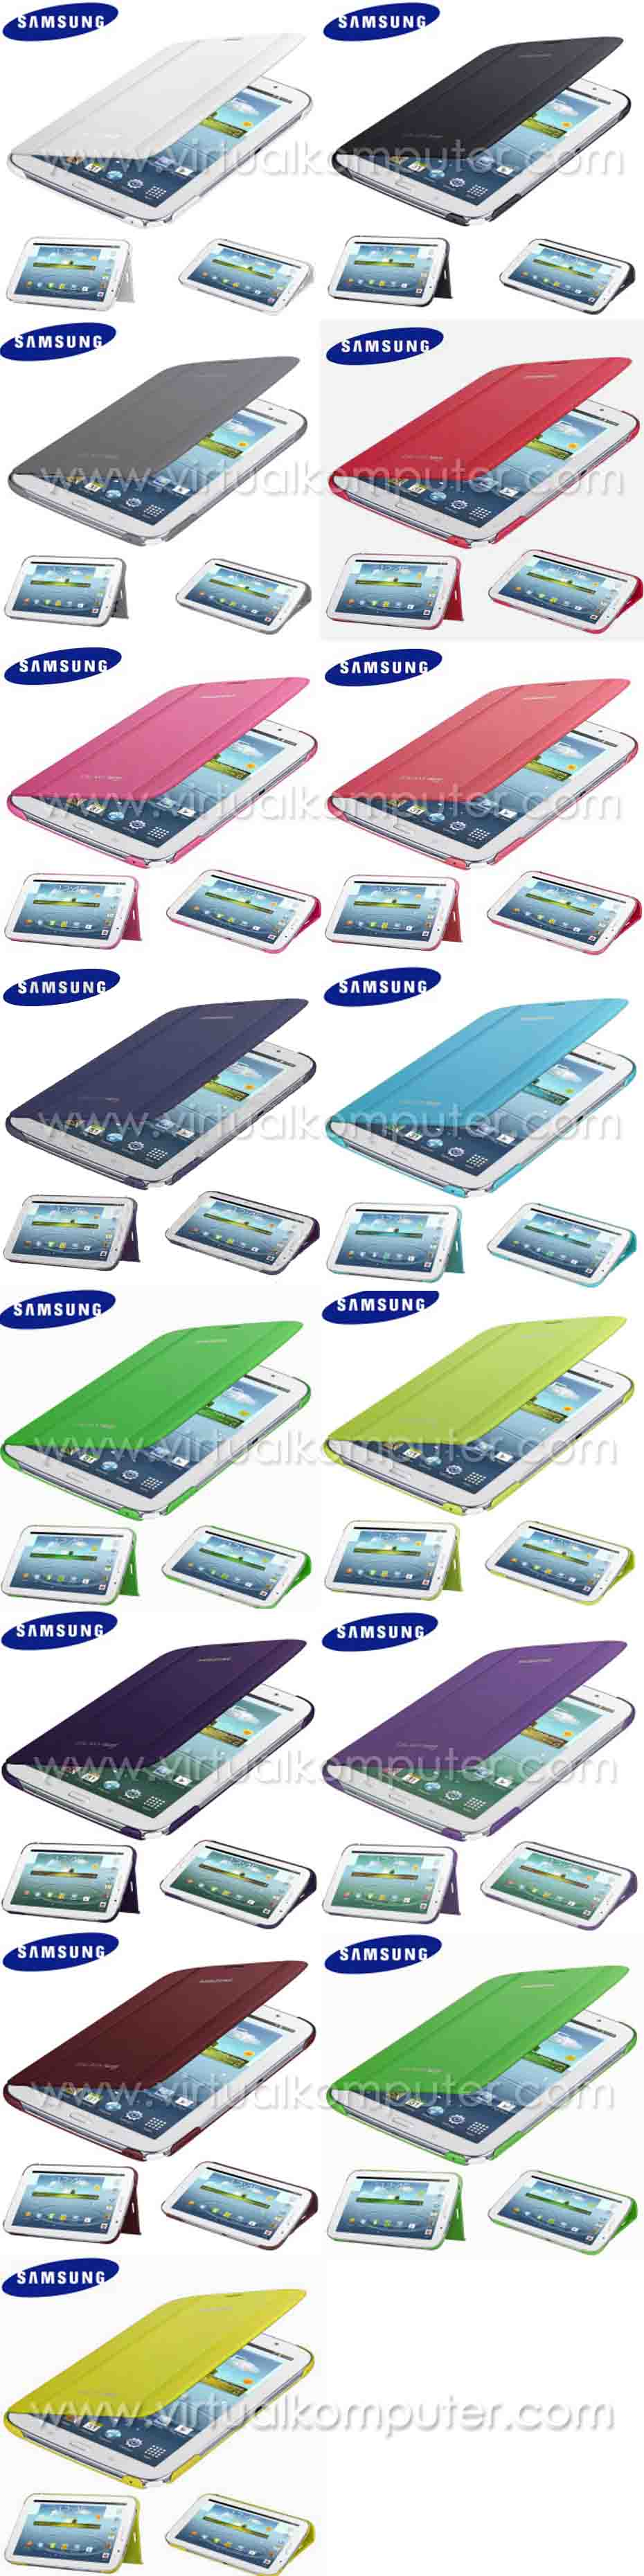 Book Cover Case Stand for Samsung Galaxy Note 8.0 N5100 Overview